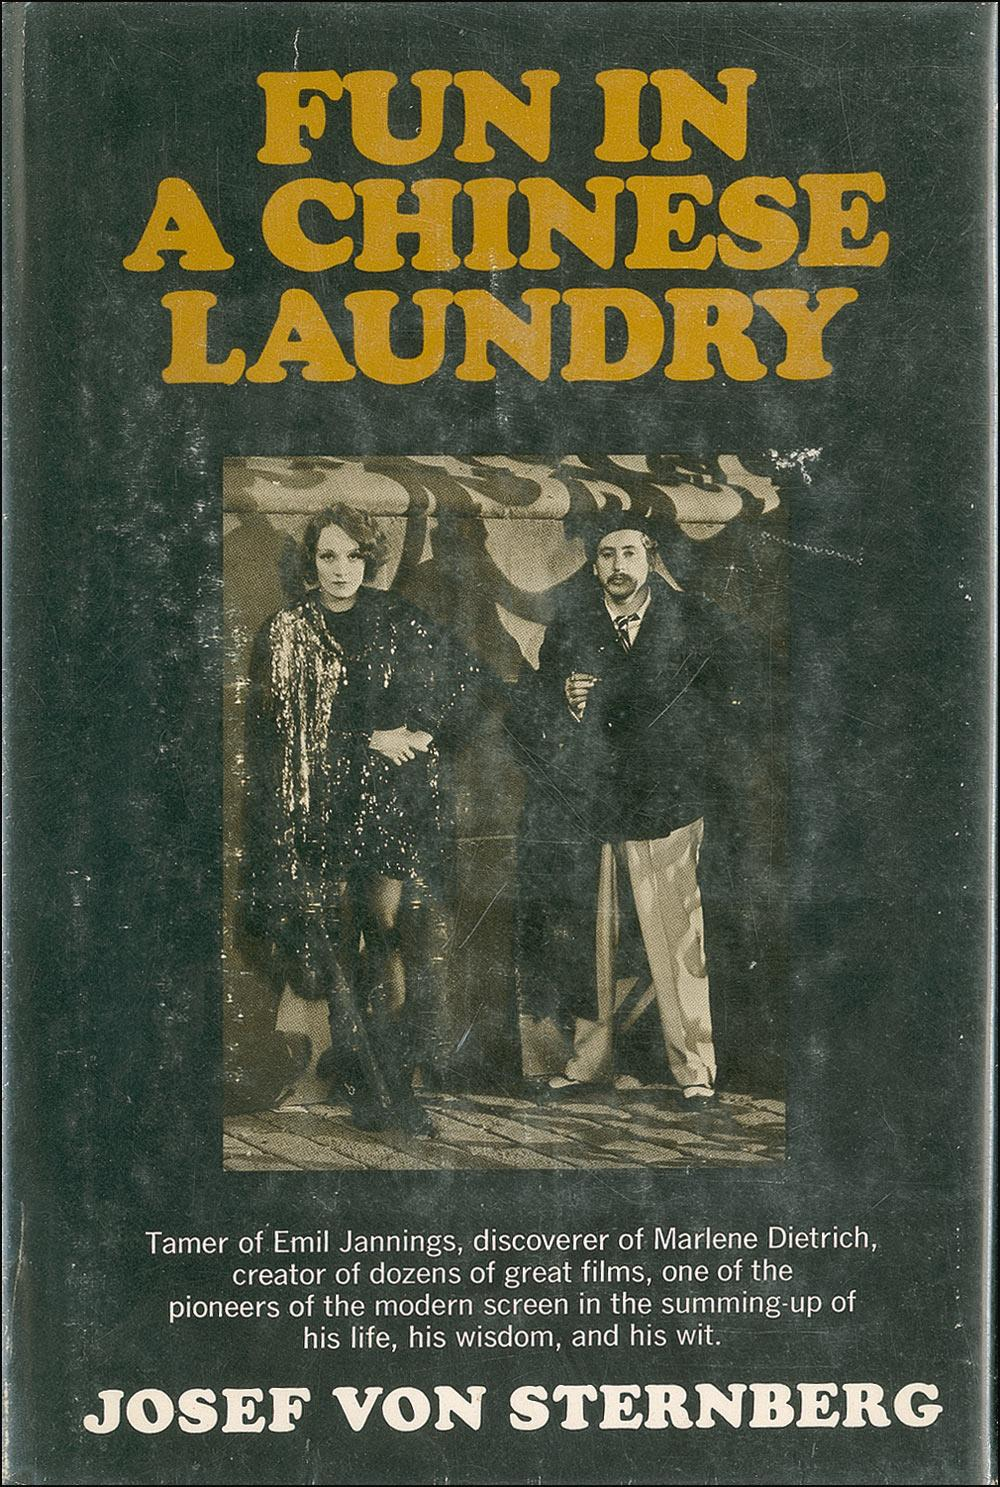 Fun in a Chinese Laundry by Josef von Sternberg